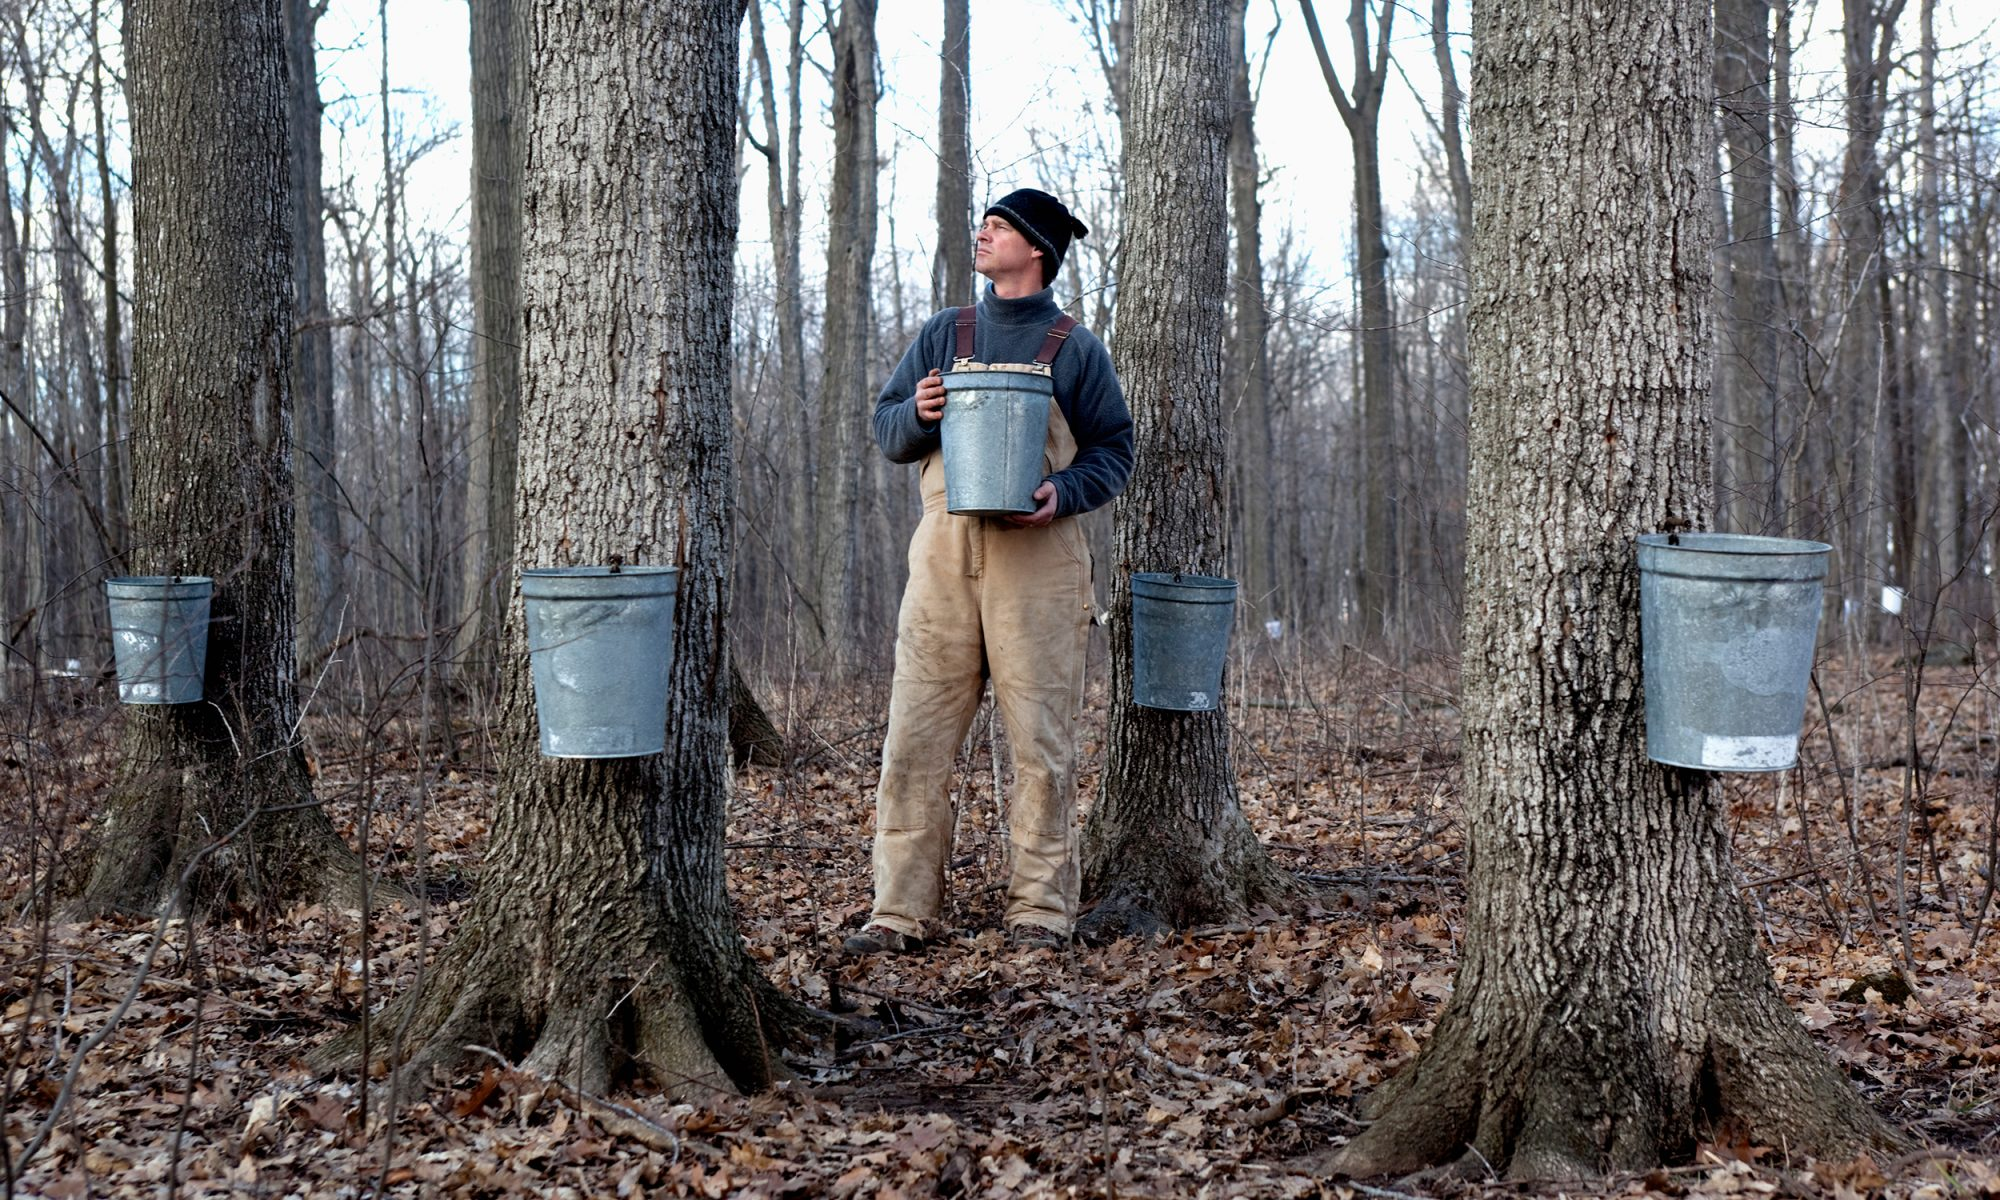 EC: The Maple Syrup Industry Will Always Be Mad About Fake Maple Flavoring